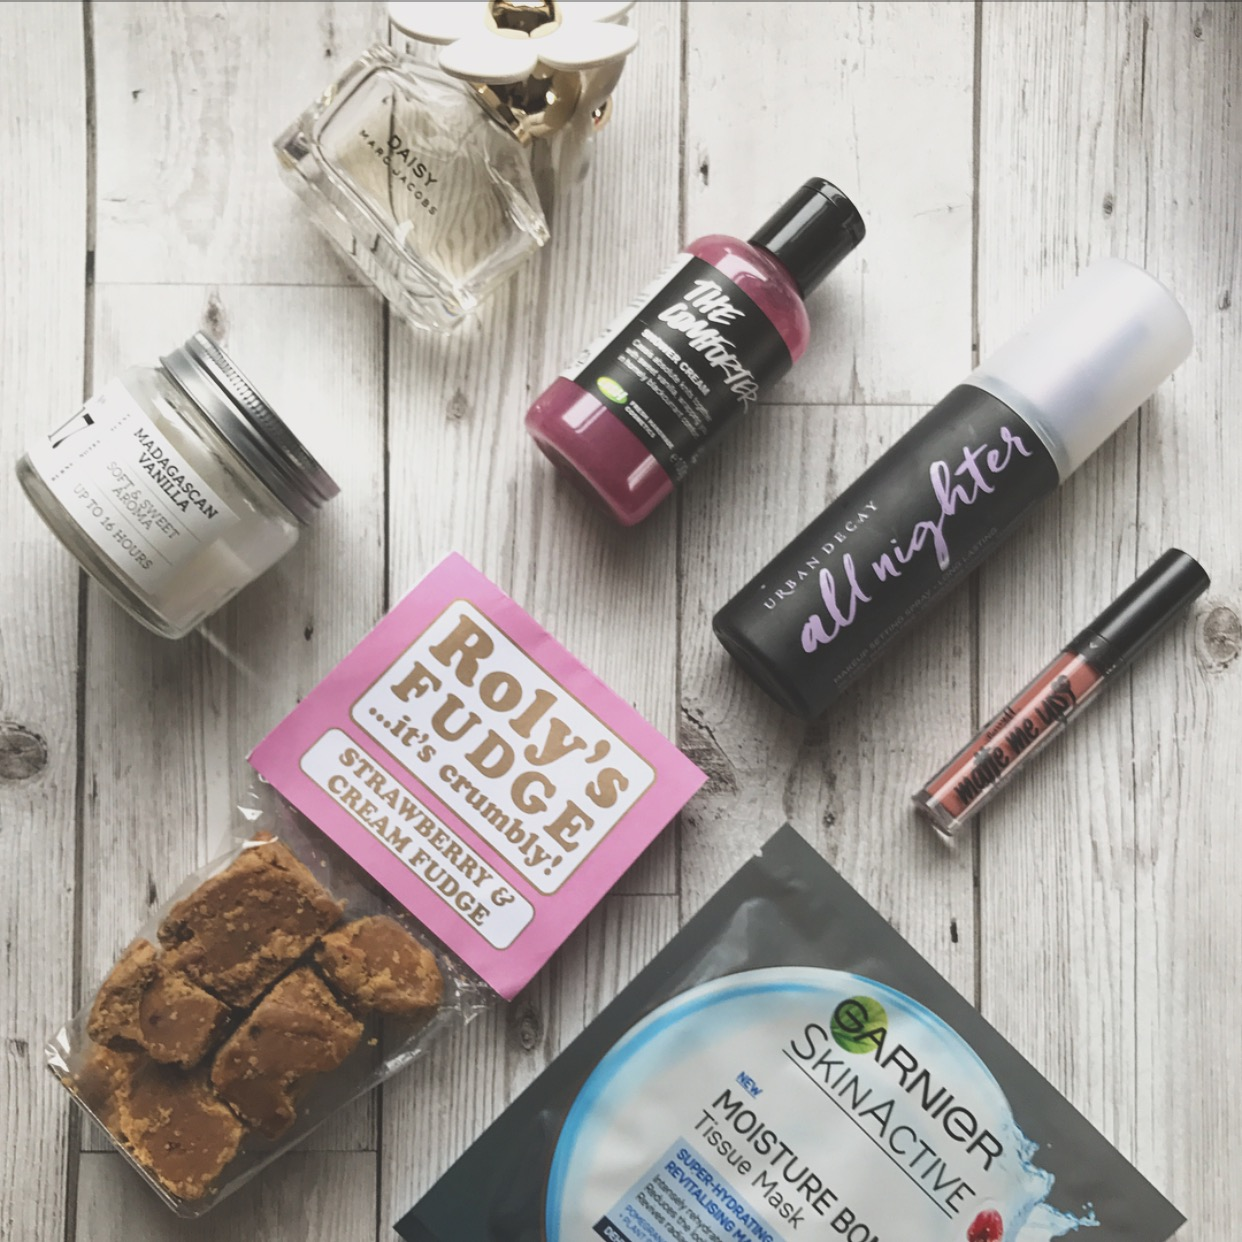 Beauty and food products